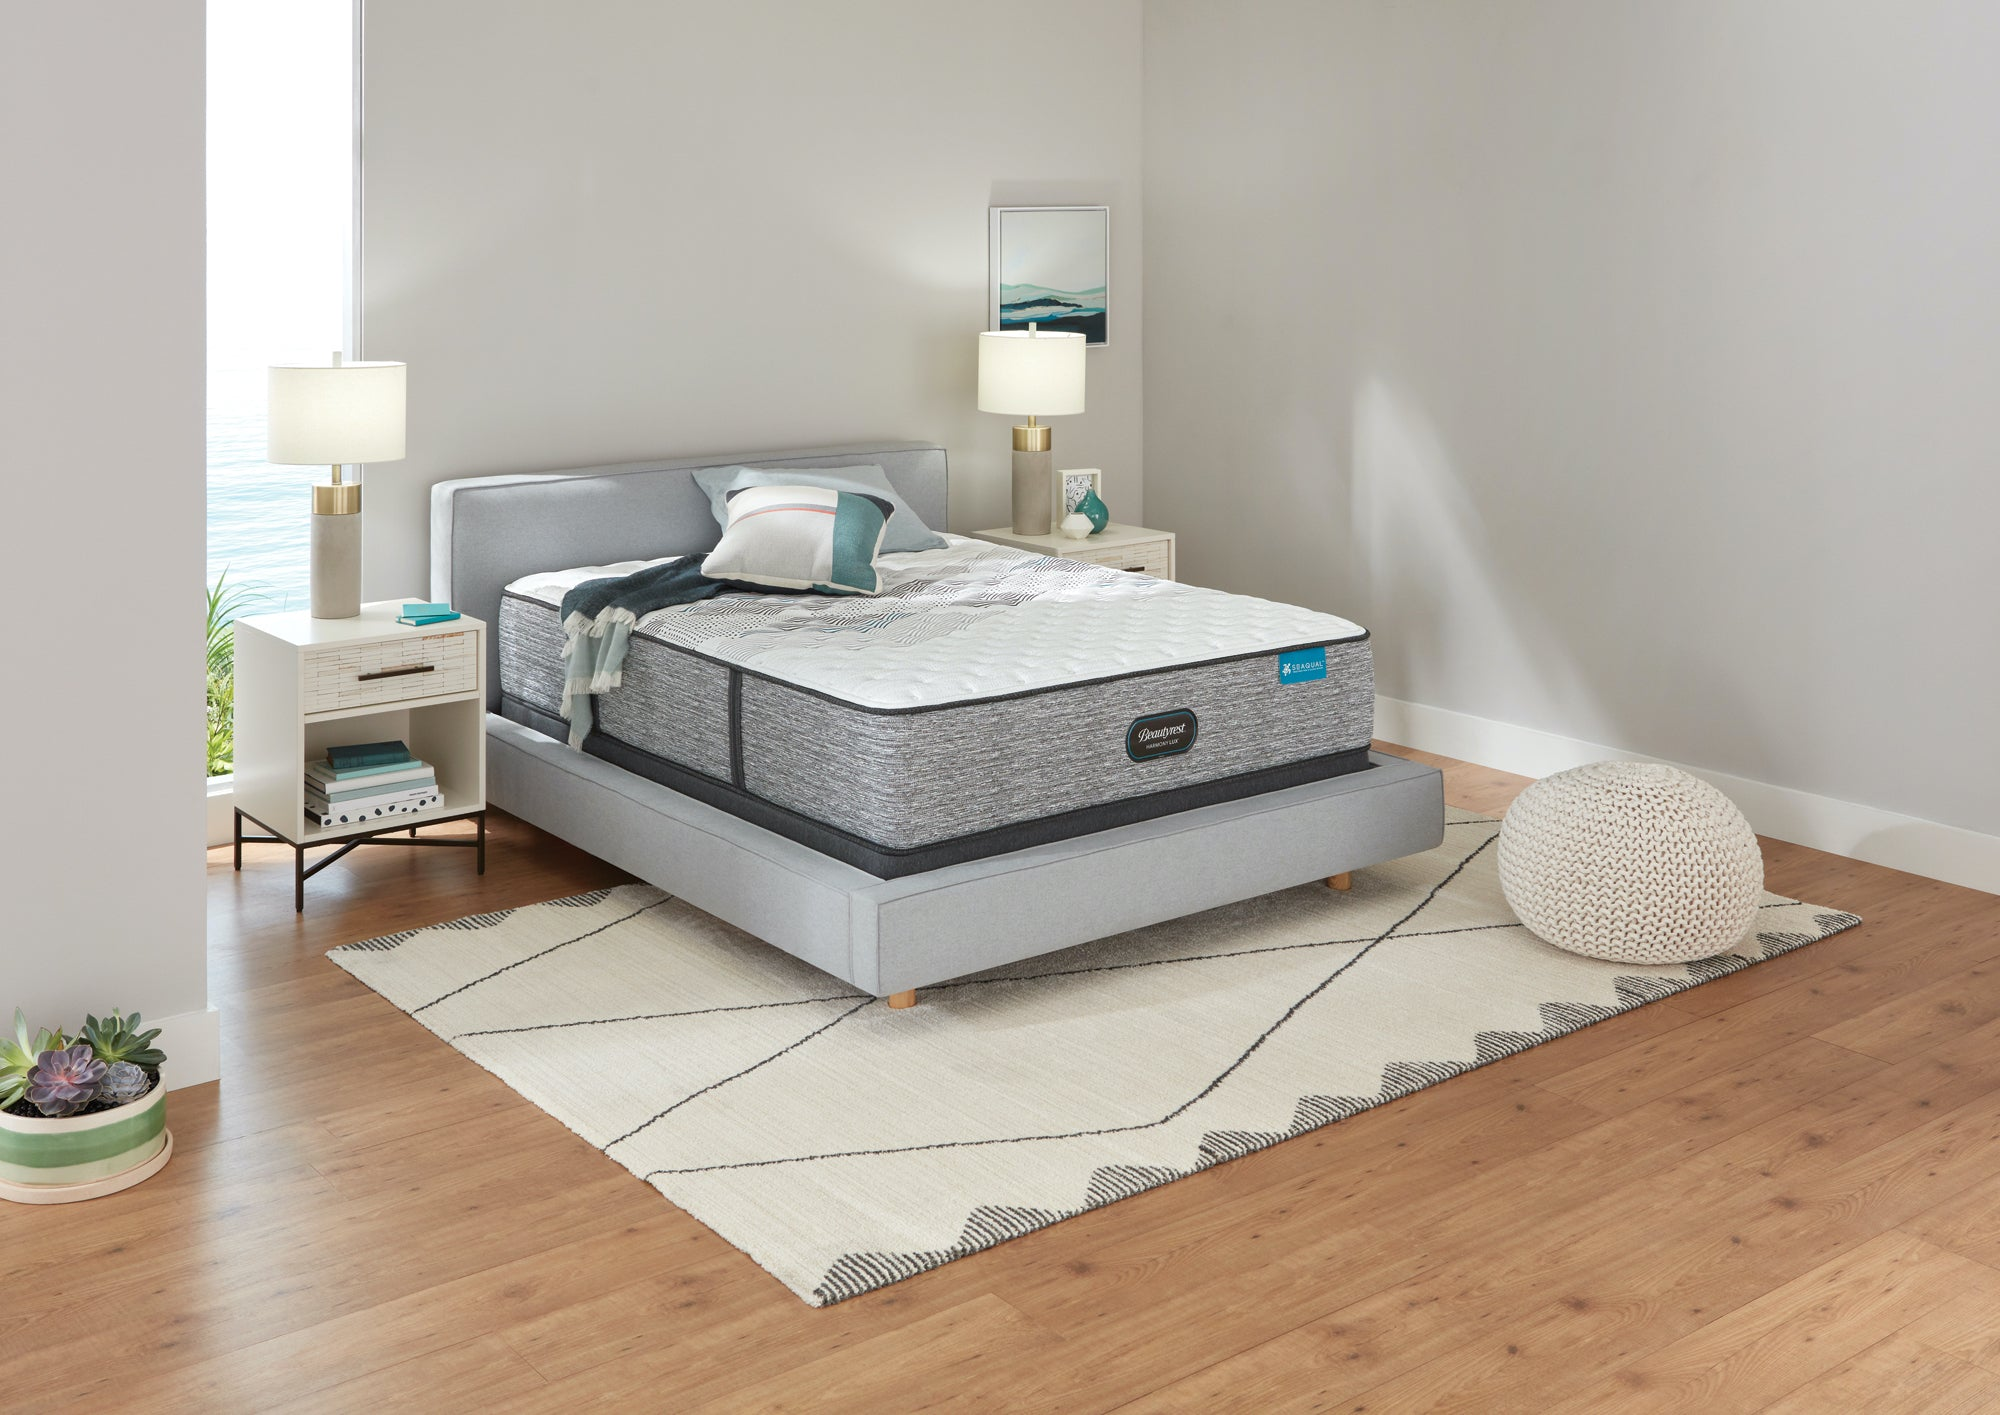 Meet Our Newest Additions: Simmons Beautyrest and Serta!